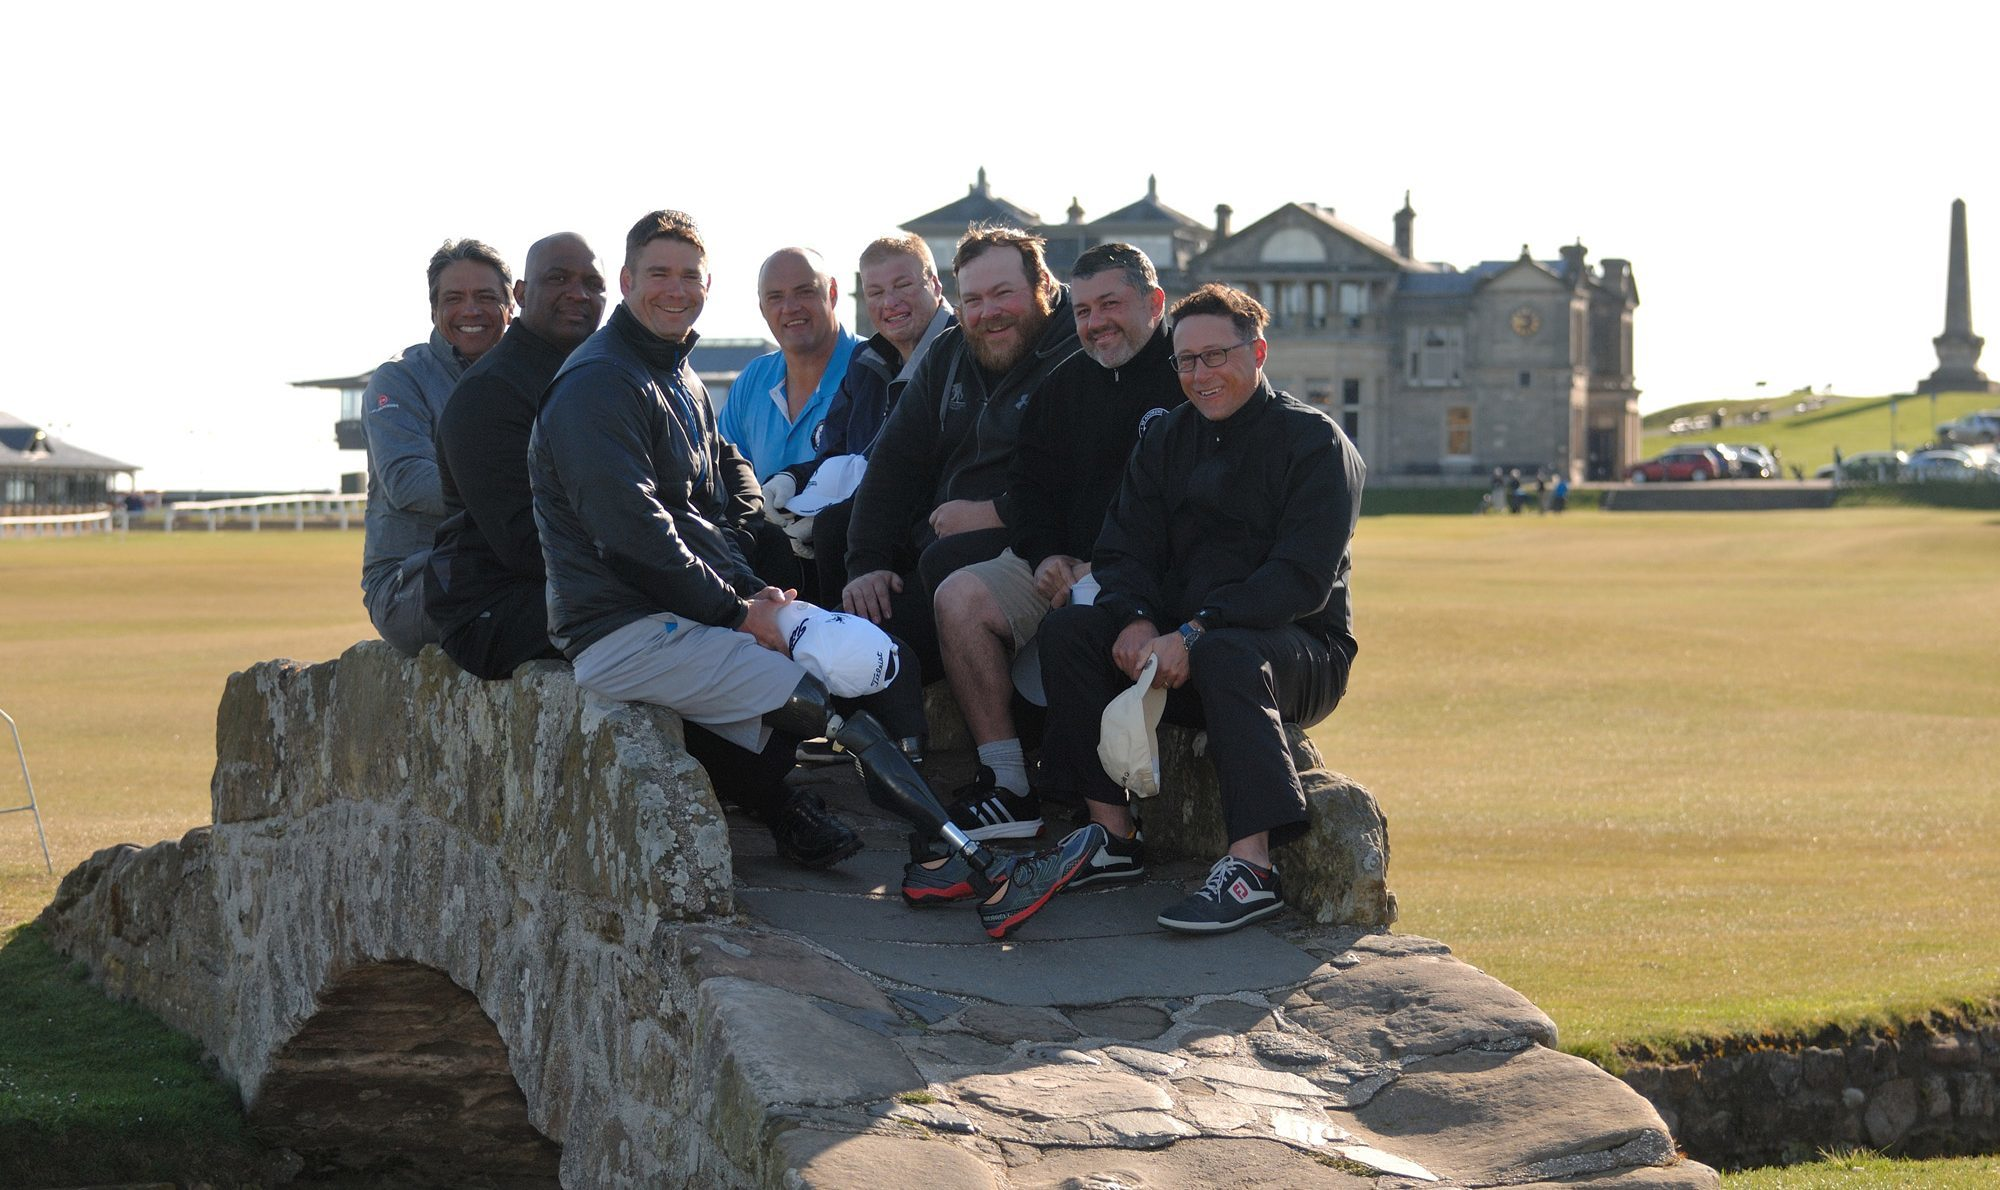 St Andrews Legacy participants on the Swilcan Bridge at the Old Course in 2016